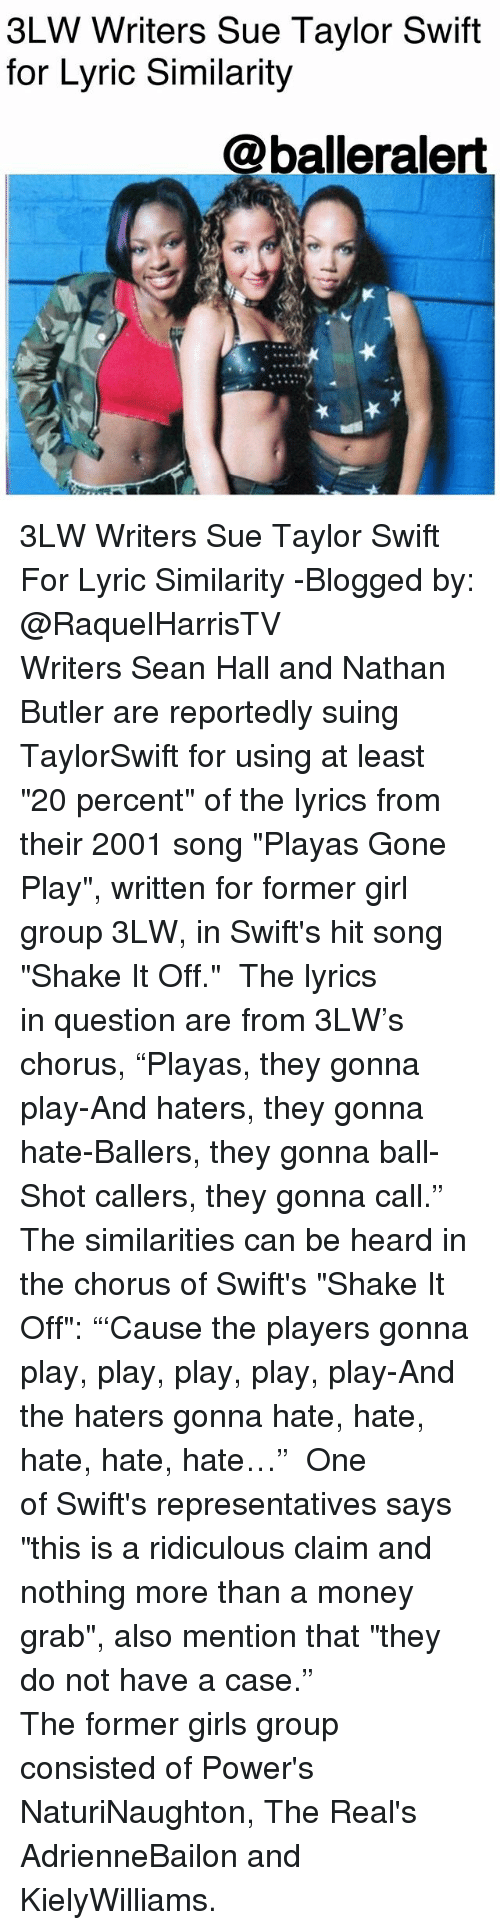 "Girls, Memes, and Money: 3LW Writers Sue Taylor Swift  for Lyric Similarity  @balleralert 3LW Writers Sue Taylor Swift For Lyric Similarity -Blogged by: @RaquelHarrisTV ⠀⠀⠀⠀⠀⠀⠀⠀⠀ Writers Sean Hall and Nathan Butler are reportedly suing TaylorSwift for using at least ""20 percent"" of the lyrics from their 2001 song ""Playas Gone Play"", written for former girl group 3LW, in Swift's hit song ""Shake It Off."" ⠀⠀⠀⠀⠀⠀⠀⠀⠀ The lyrics in question are from 3LW's chorus, ""Playas, they gonna play-And haters, they gonna hate-Ballers, they gonna ball-Shot callers, they gonna call."" The similarities can be heard in the chorus of Swift's ""Shake It Off"": ""'Cause the players gonna play, play, play, play, play-And the haters gonna hate, hate, hate, hate, hate…"" ⠀⠀⠀⠀⠀⠀⠀⠀⠀ One of Swift's representatives says ""this is a ridiculous claim and nothing more than a money grab"", also mention that ""they do not have a case."" ⠀⠀⠀⠀⠀⠀⠀⠀⠀ ⠀⠀⠀⠀⠀⠀⠀ The former girls group consisted of Power's NaturiNaughton, The Real's AdrienneBailon and KielyWilliams."